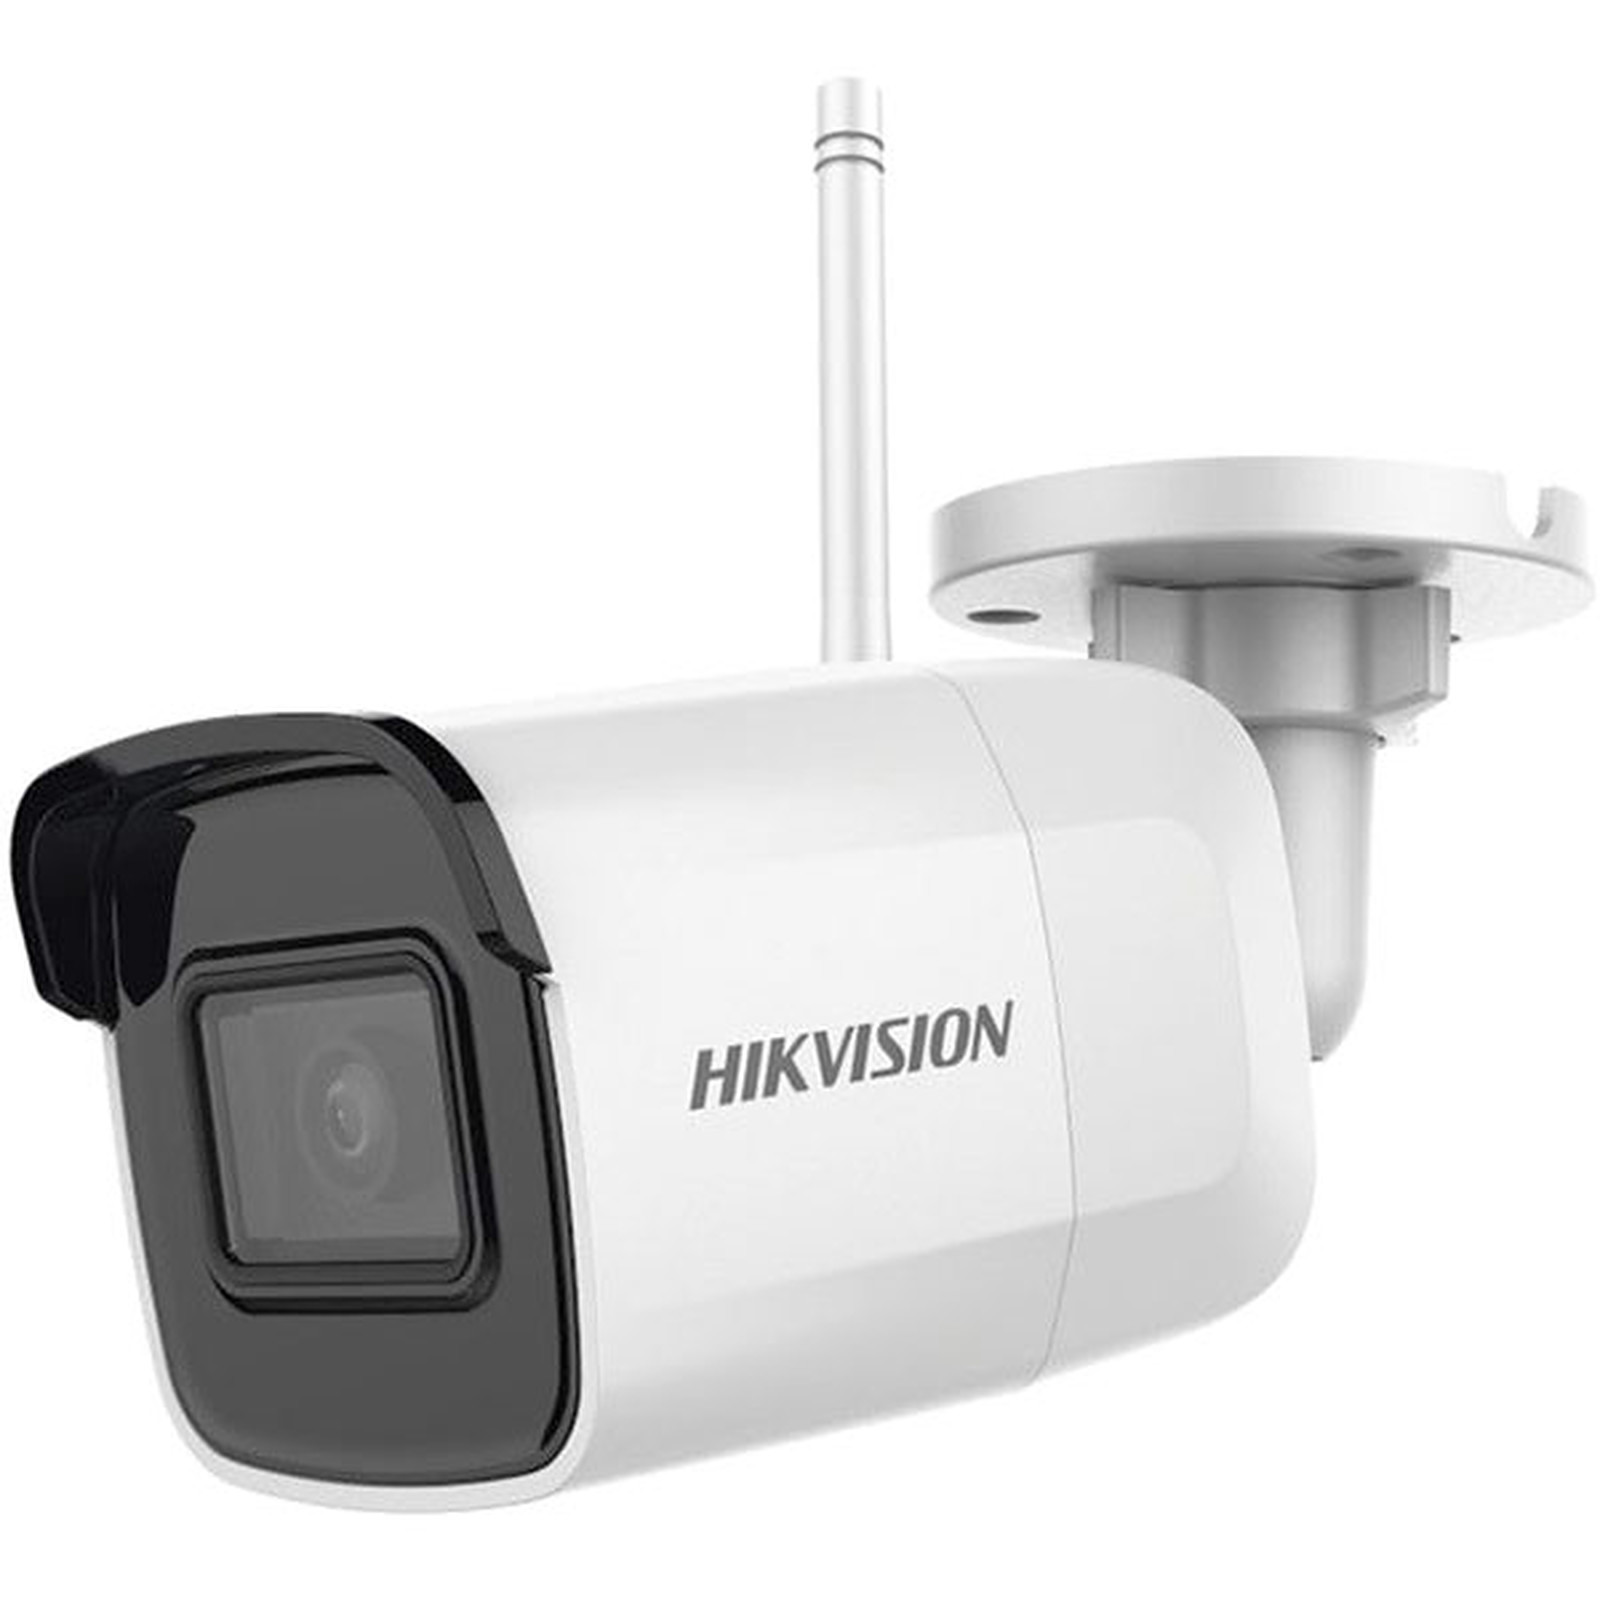 Hikvision DS-2CD2041G1-IDW1